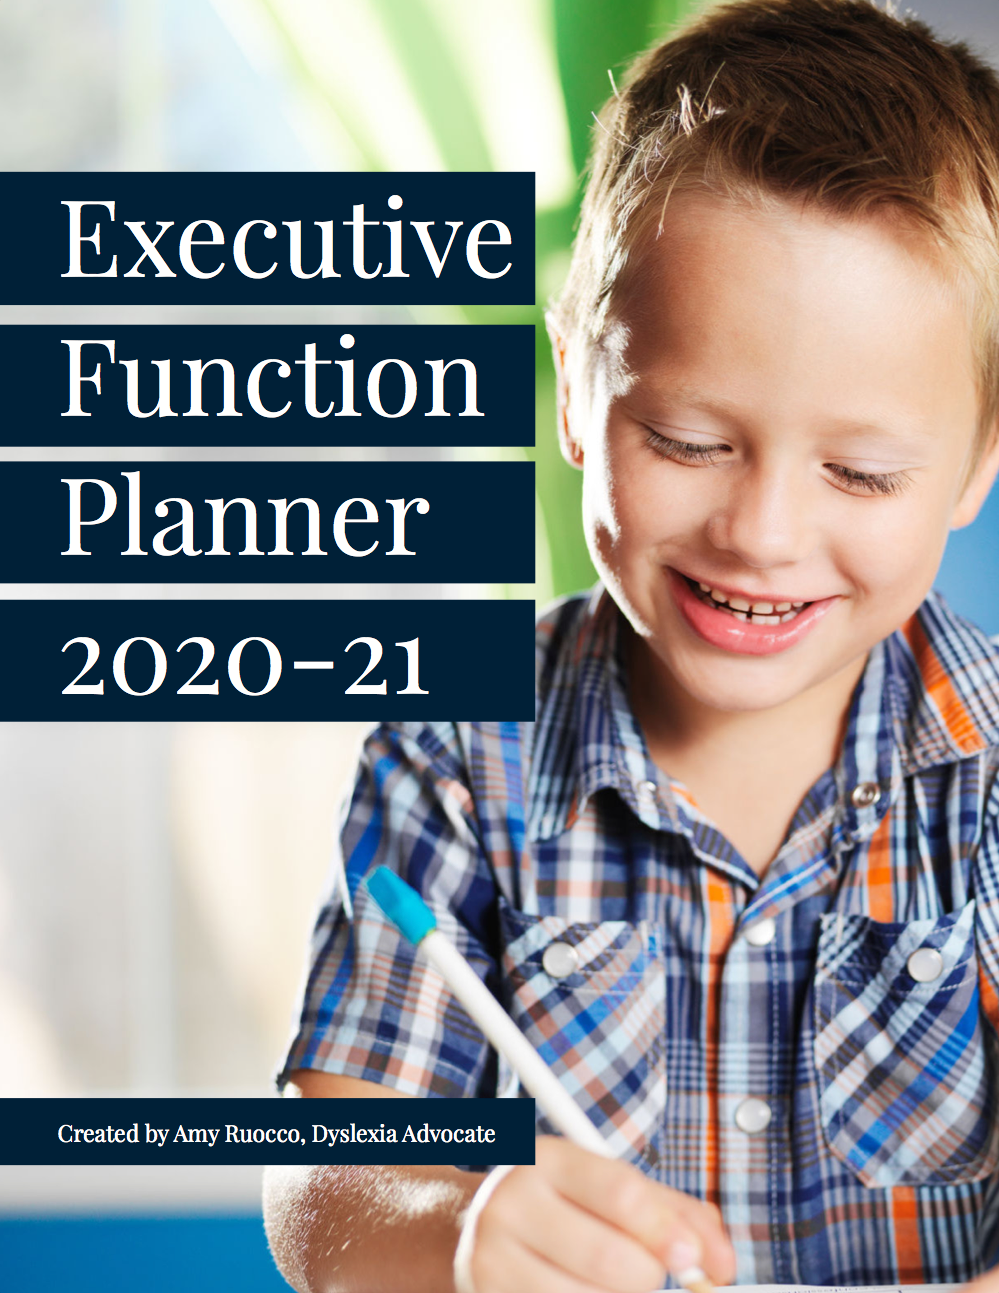 Executive Function Planner - 2020-21